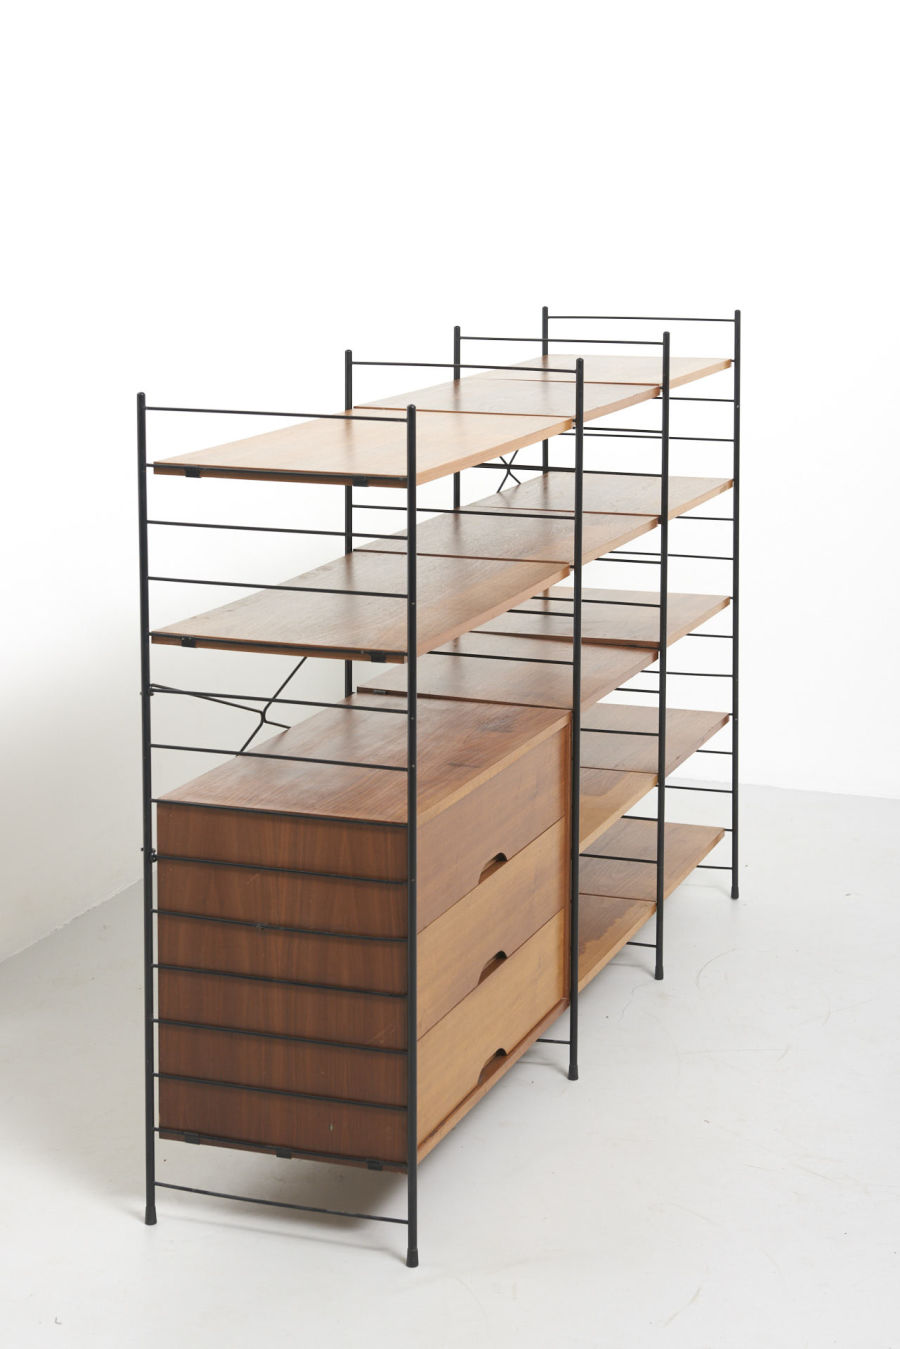 modestfurniture-vintage-2590-whb-shelving-unit-set-603